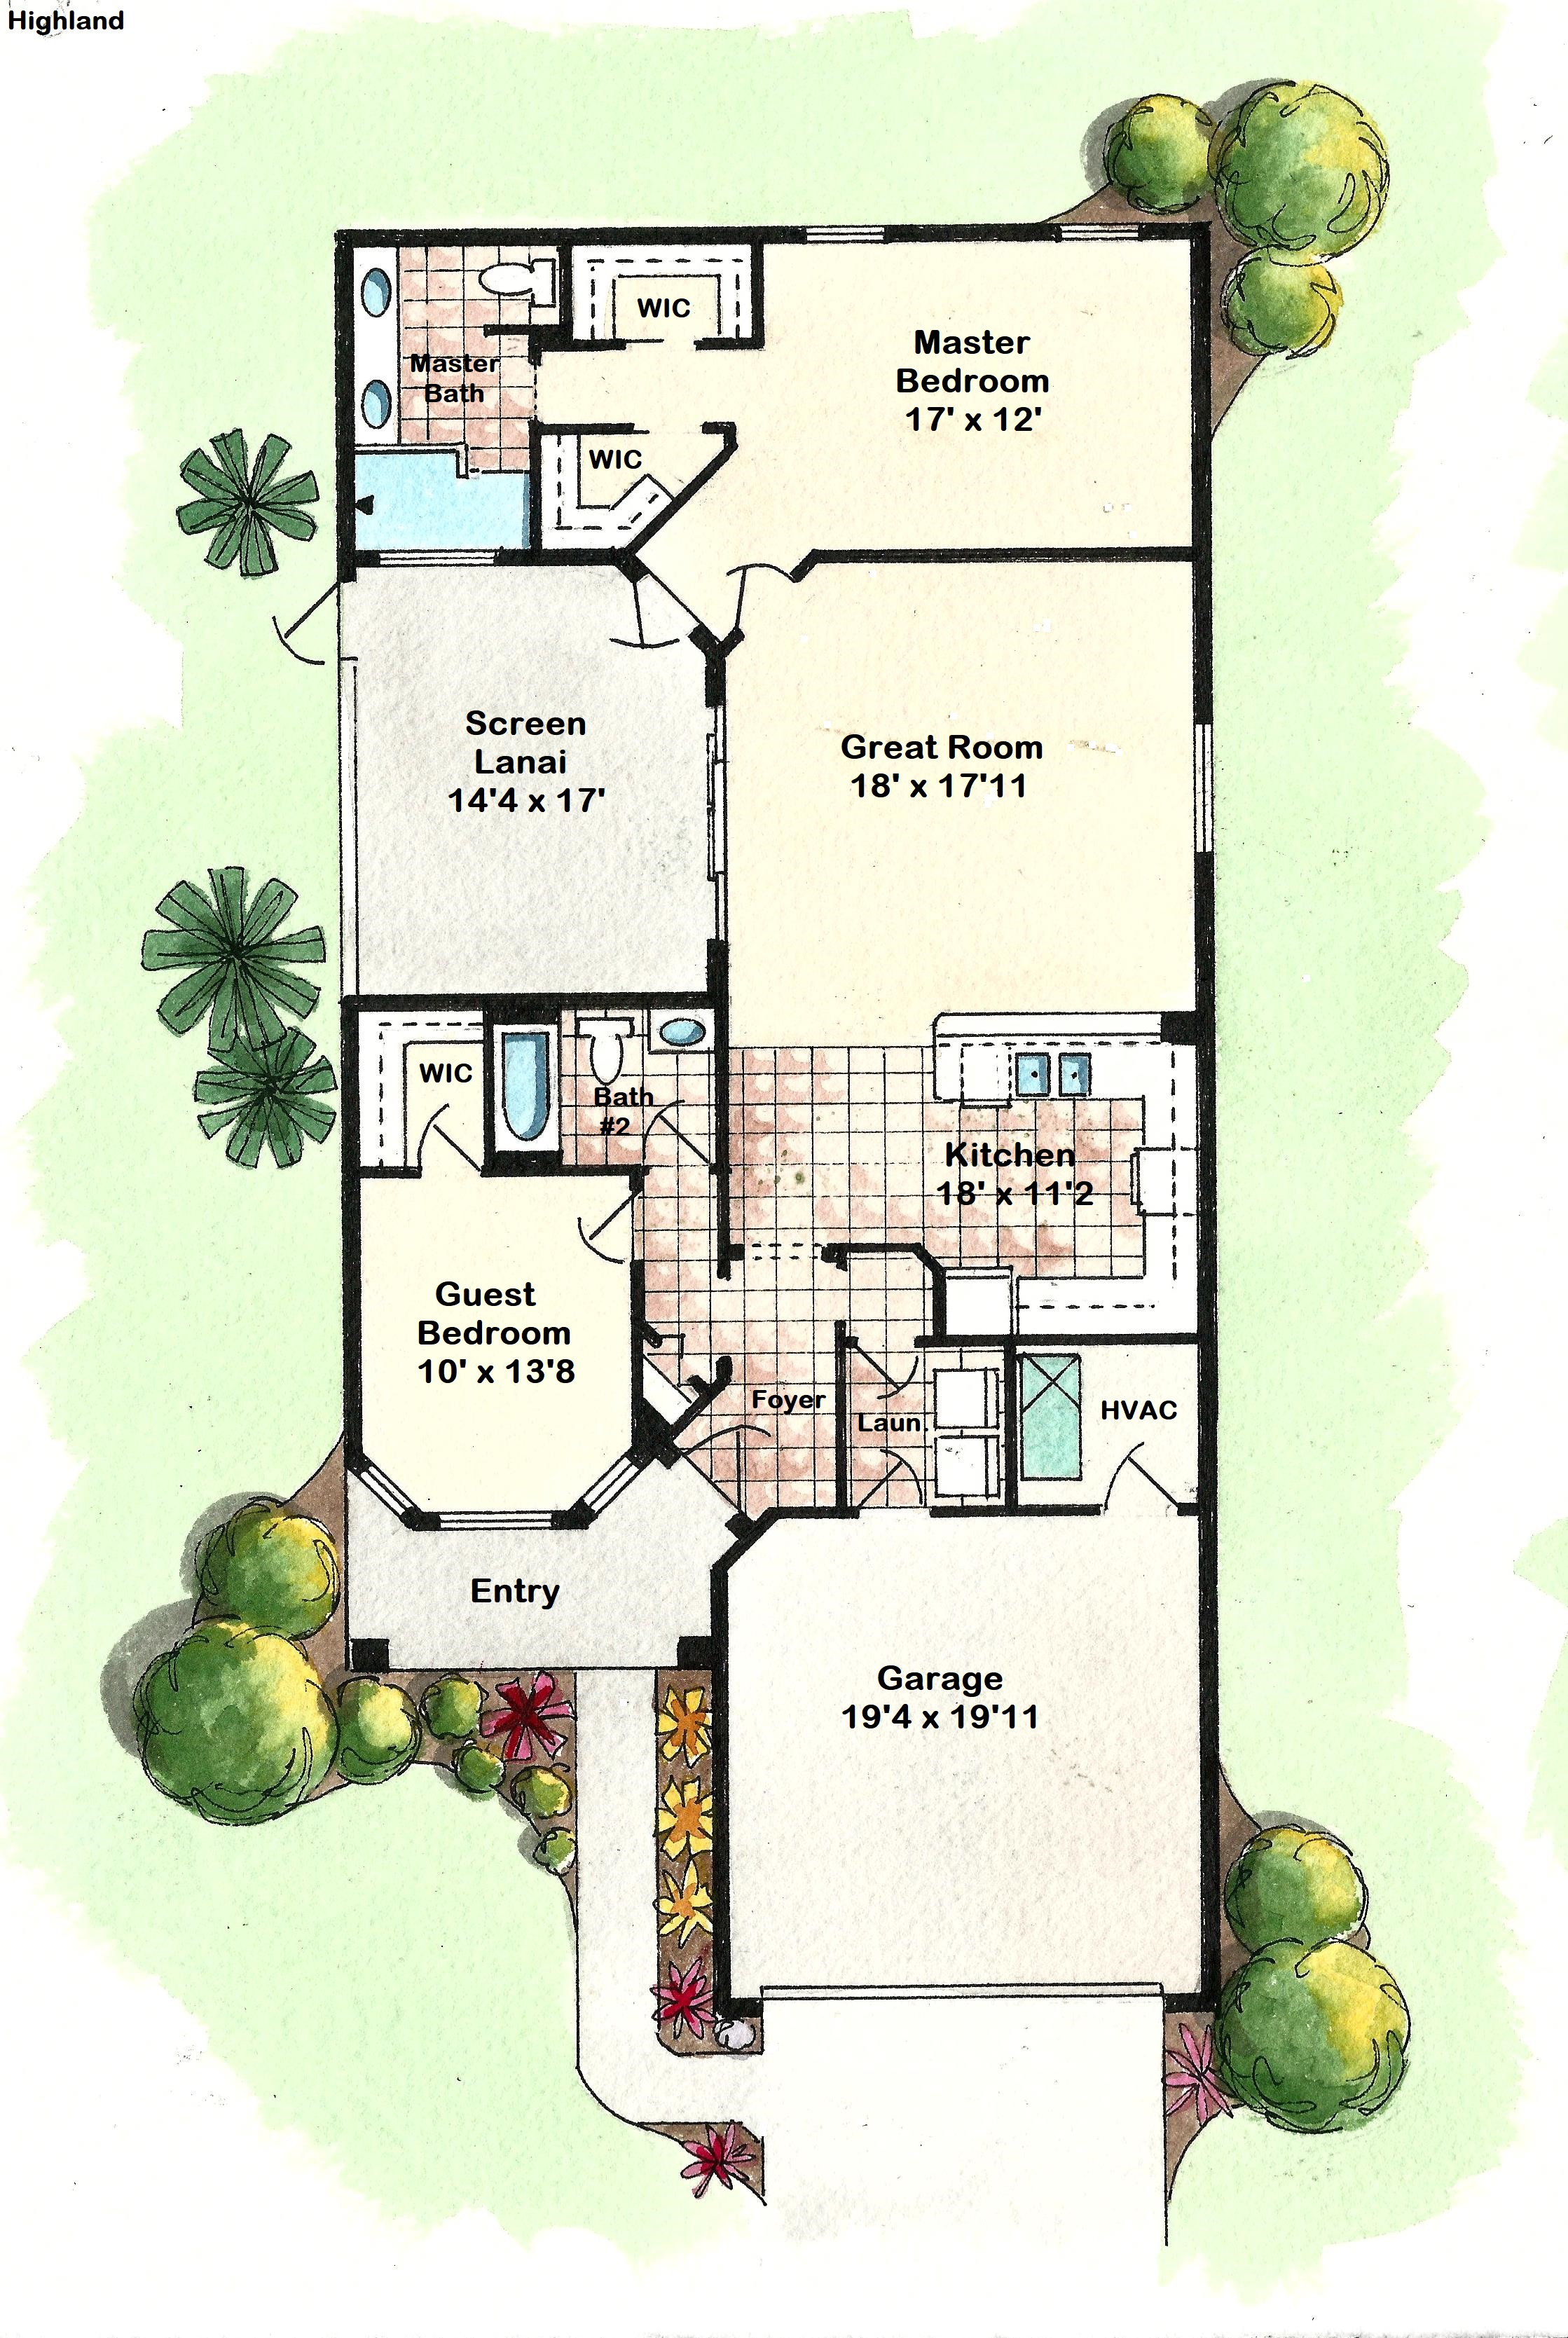 Highland - Floor Plan